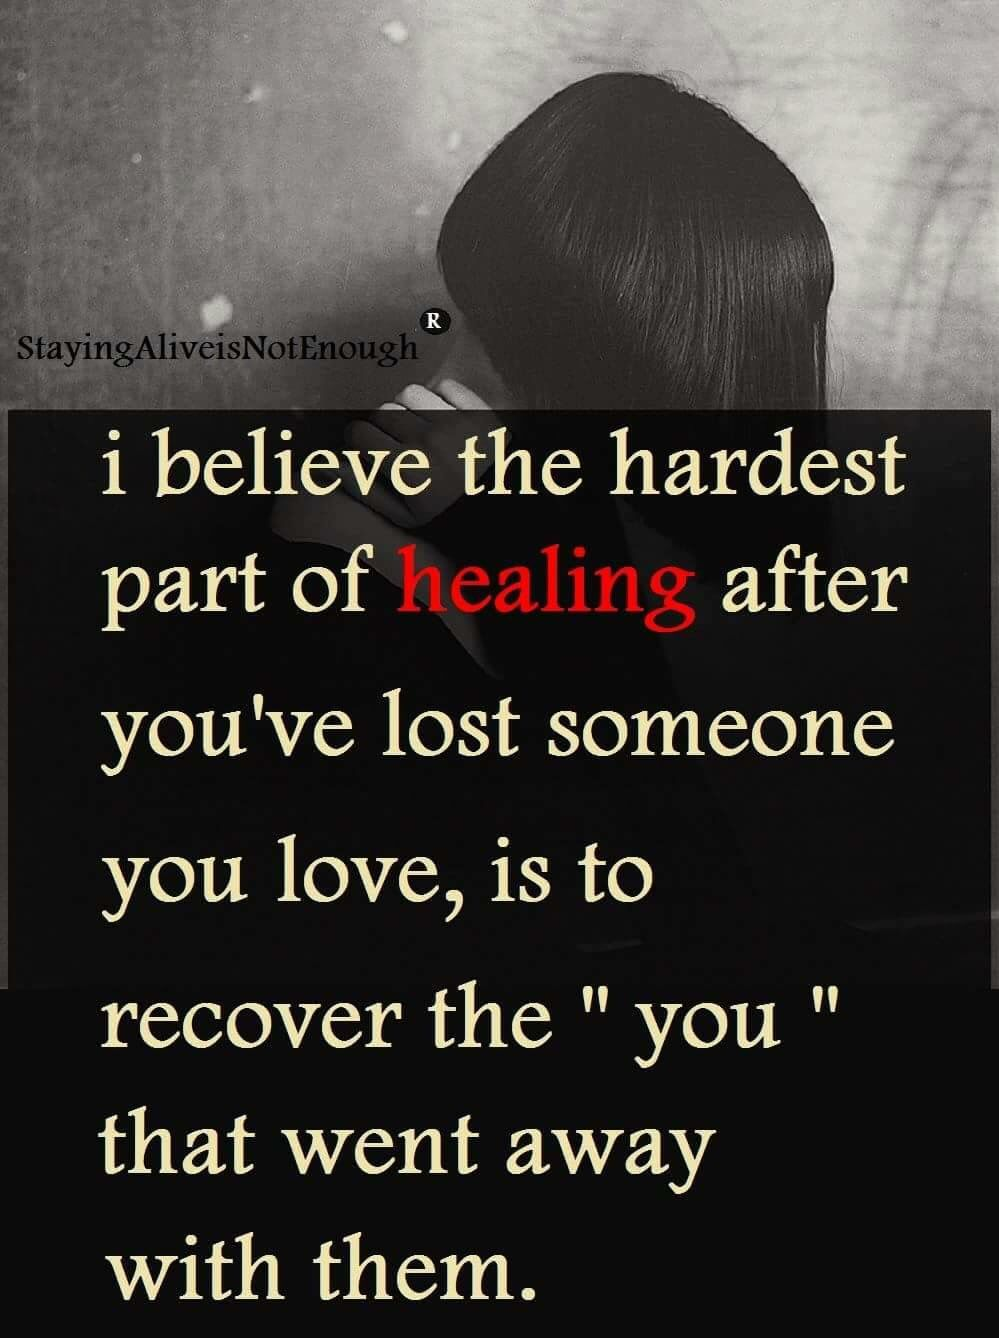 Quotes For Loss Of A Loved One I Believe The Hardest Part About Healing After The Loss Of A Loved